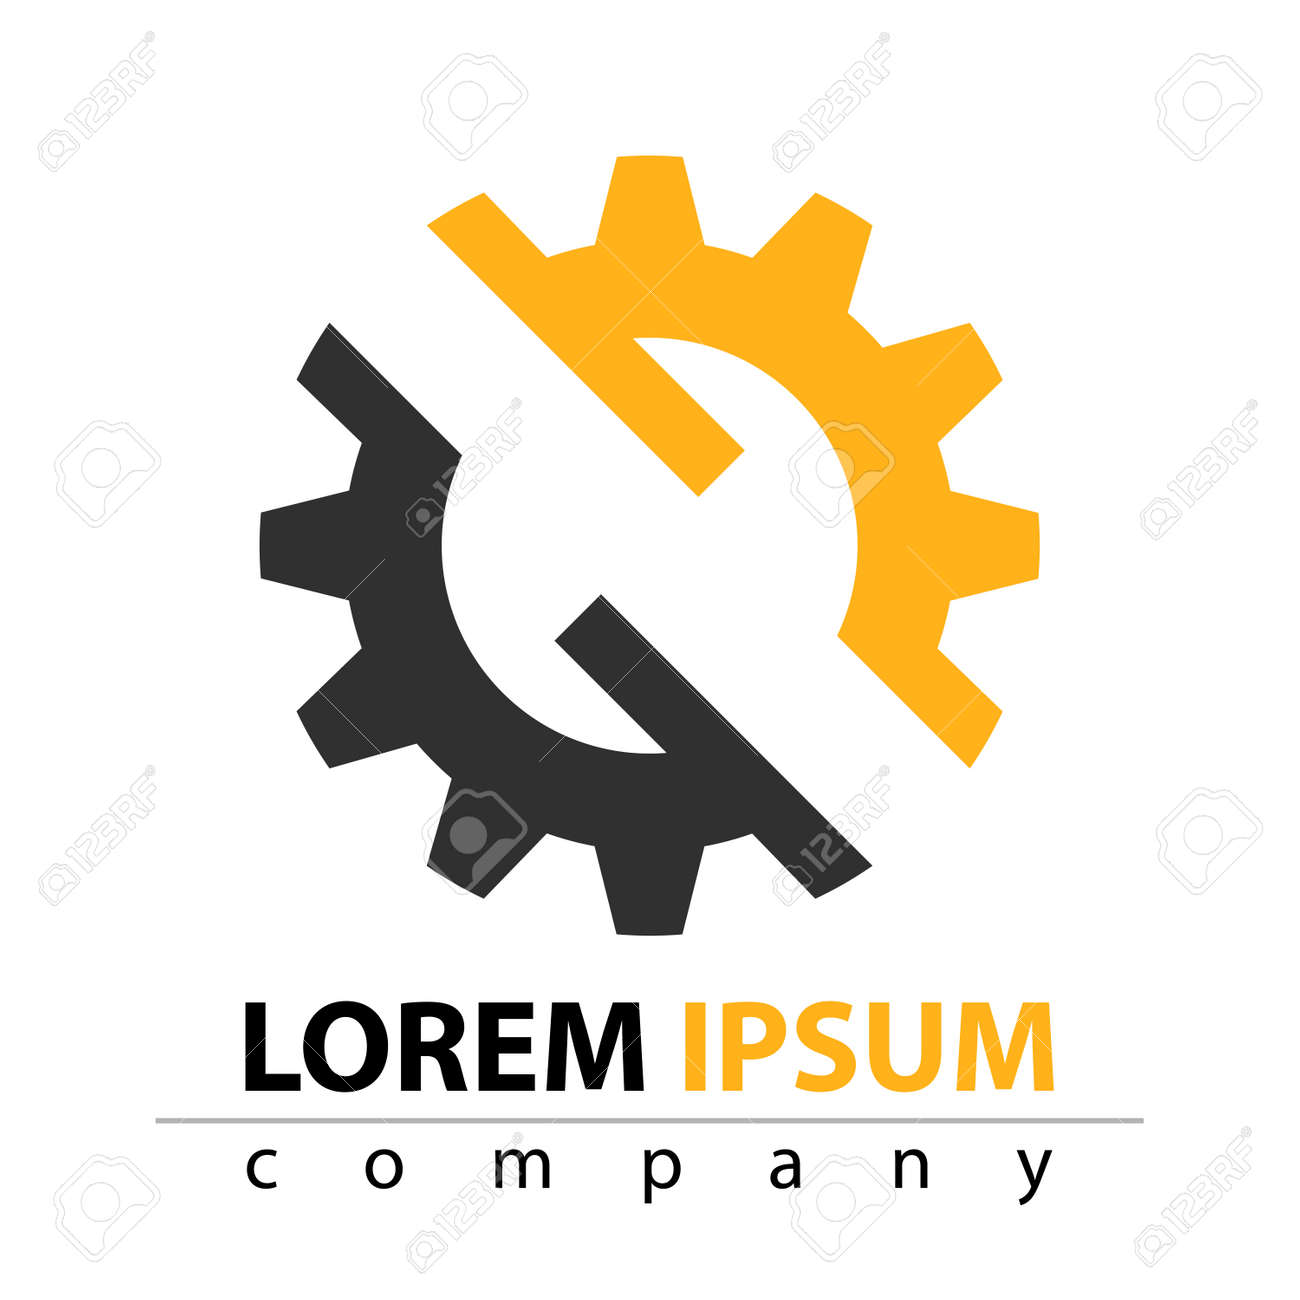 Manufacture, construction, factory manufactory - flat icon Vector eps 10 - 87566507